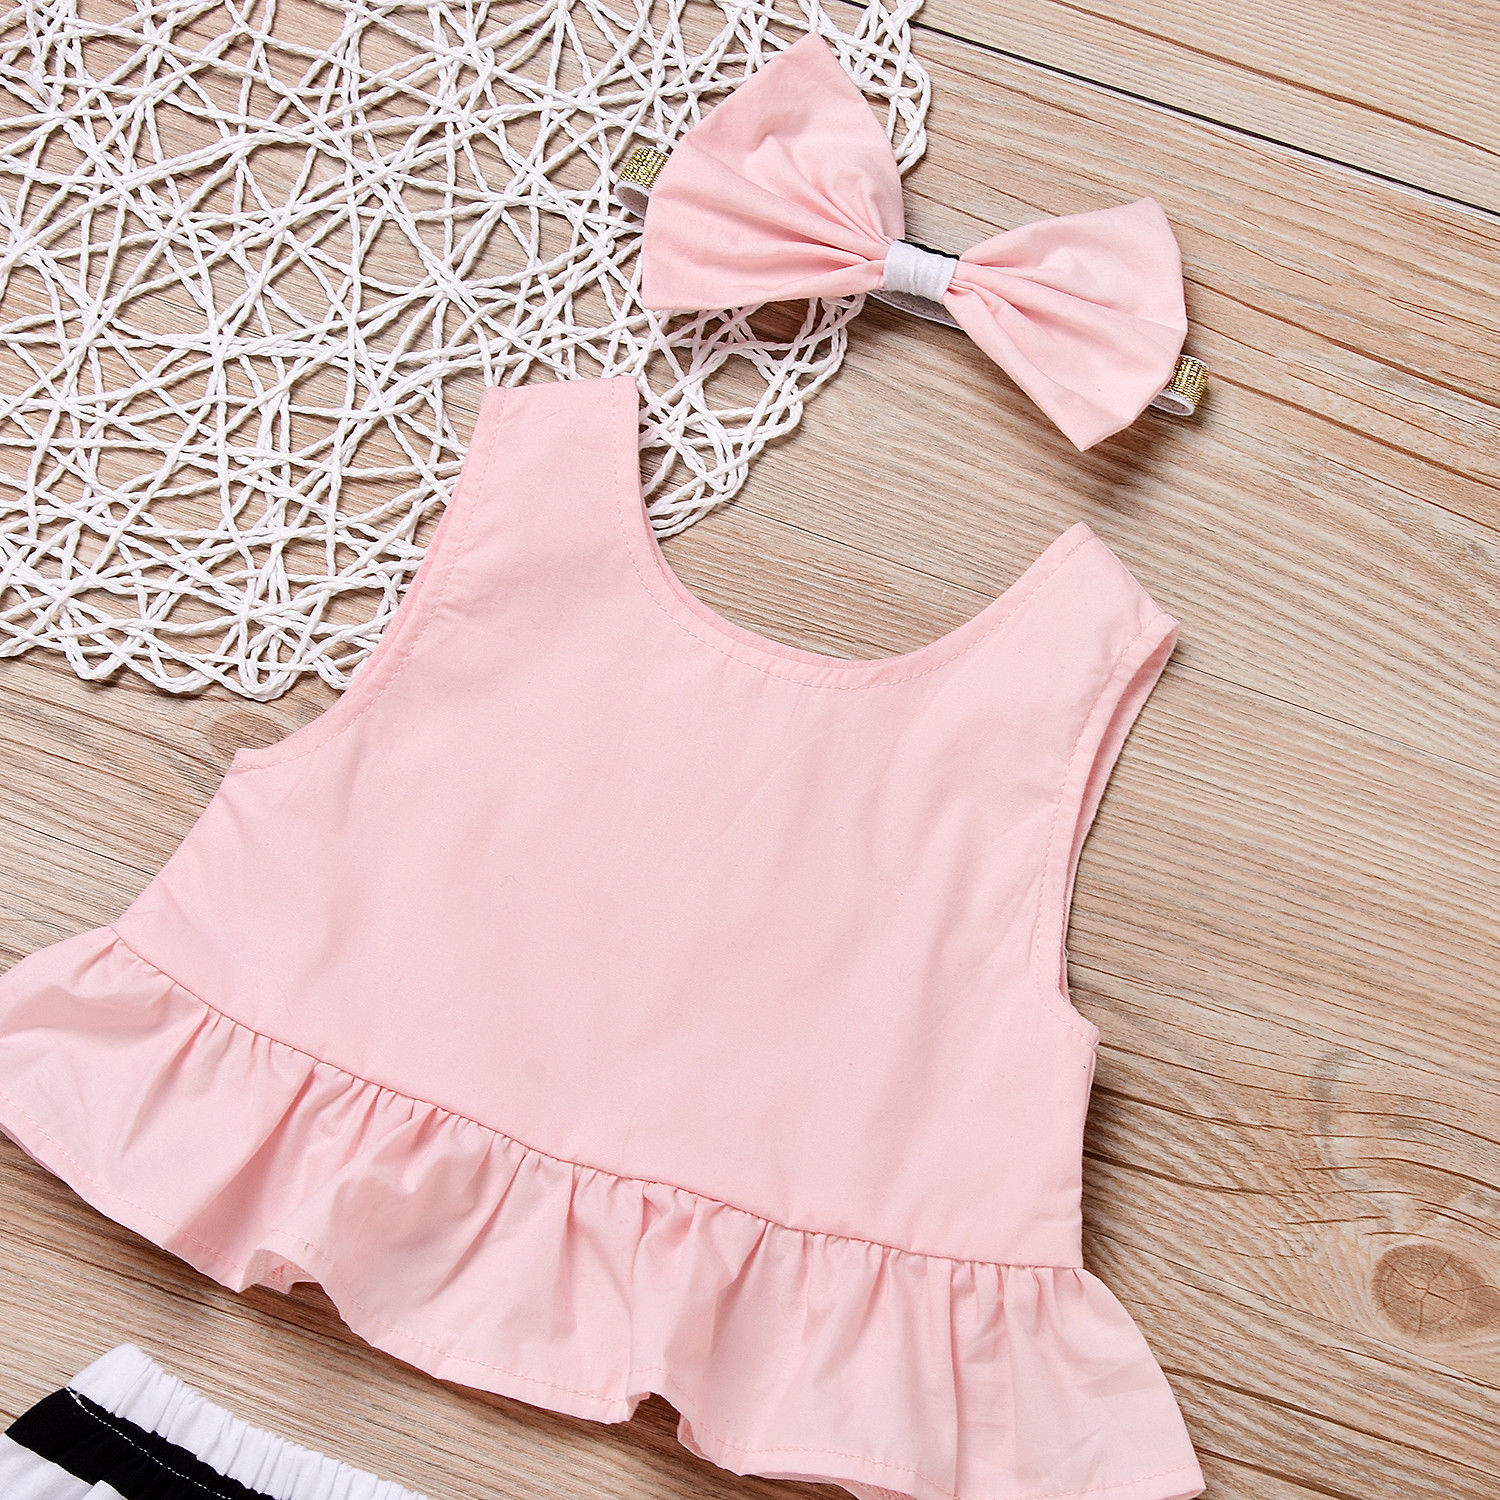 Summer Cute Baby Girls Clothes Set Pink Lovely Headband Tops Striped